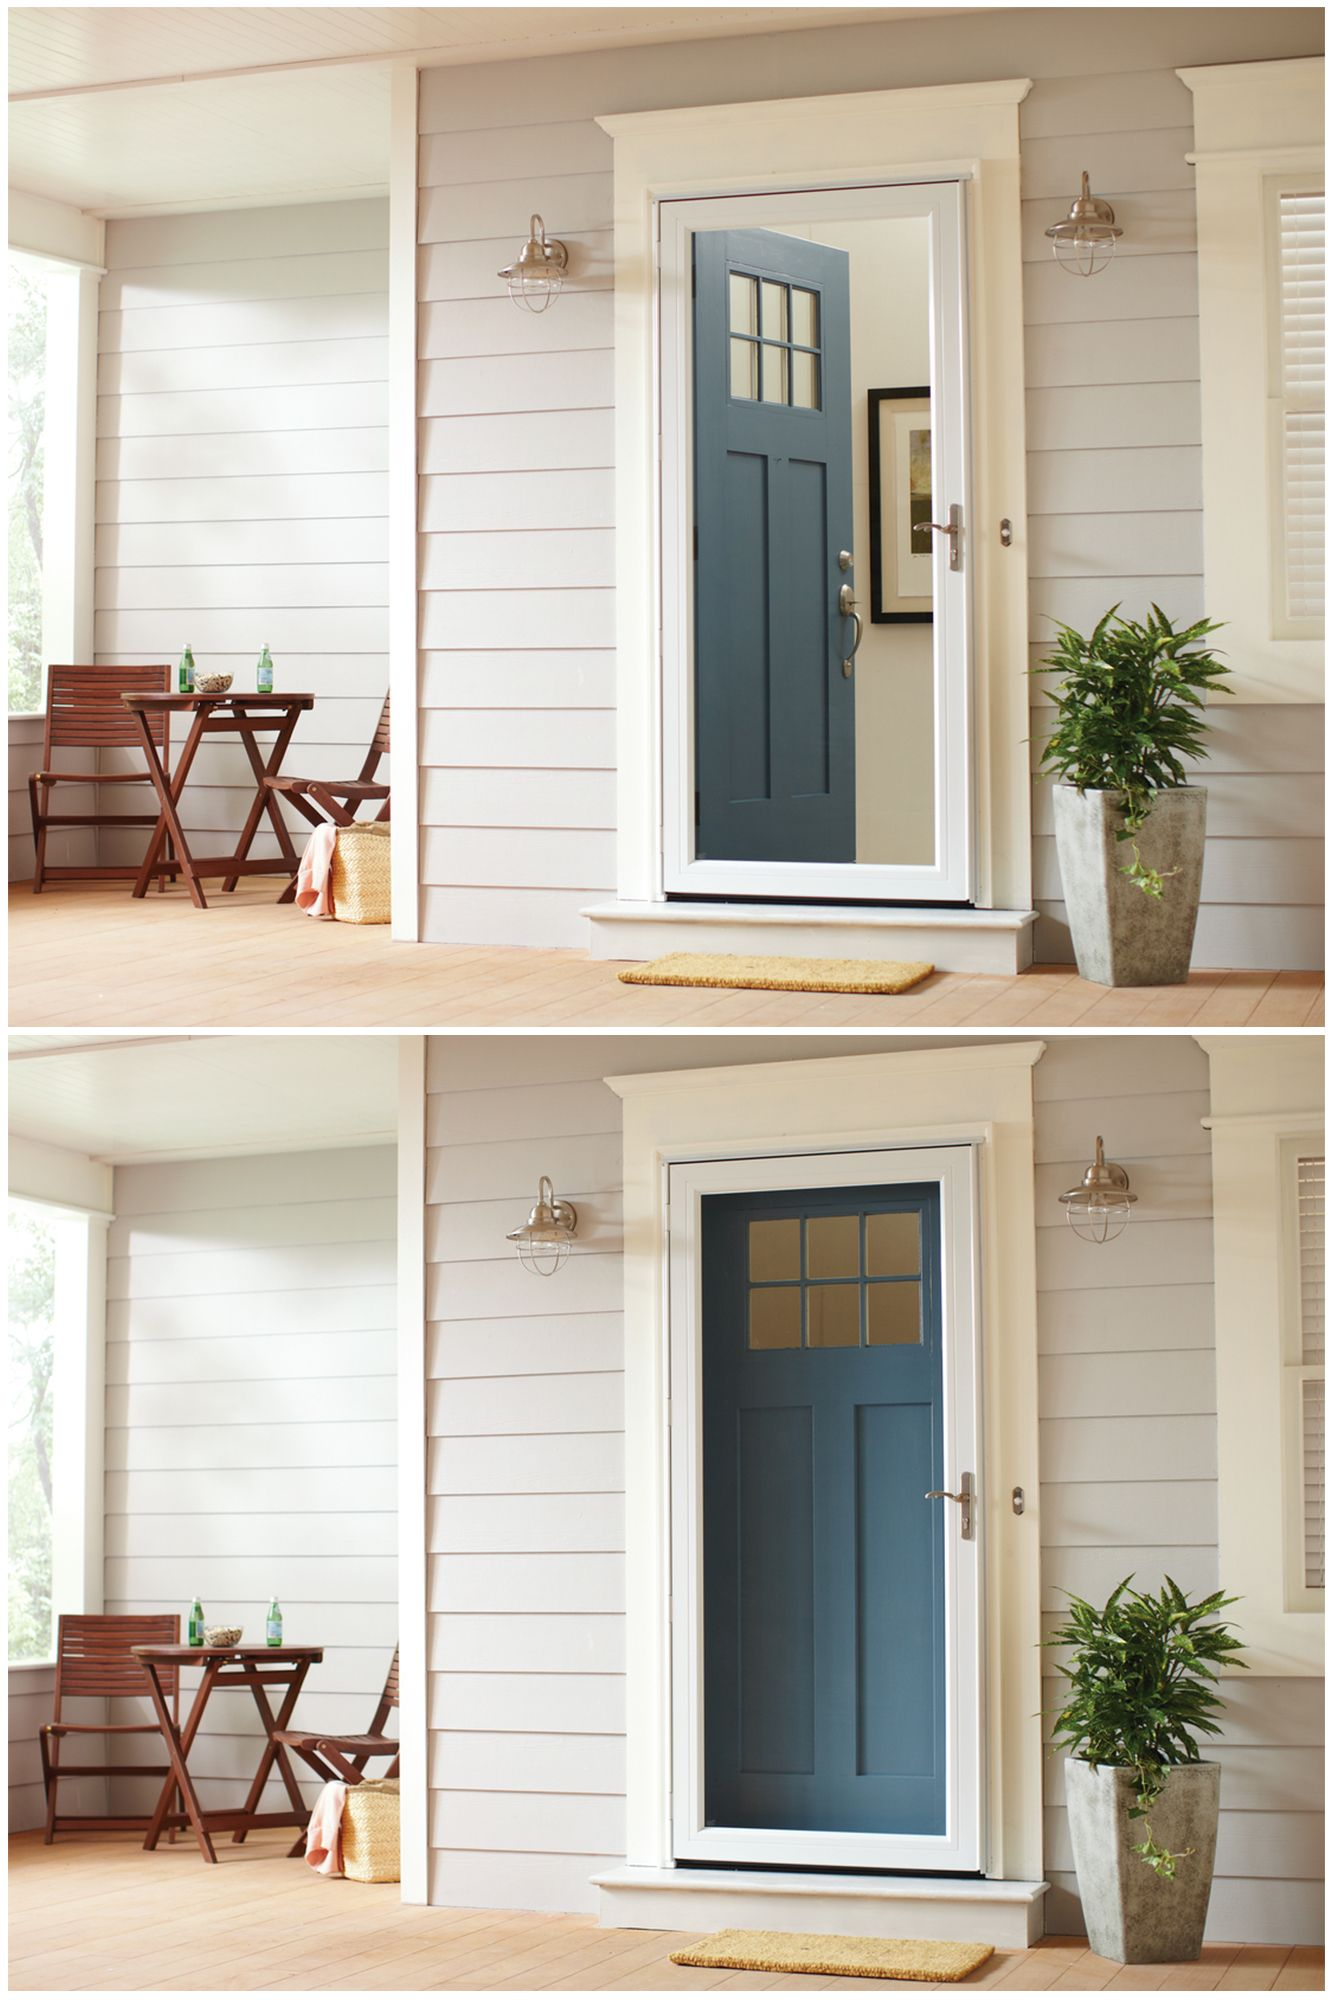 Andersen Easy Install Storm Doors Are Prepped For Quick